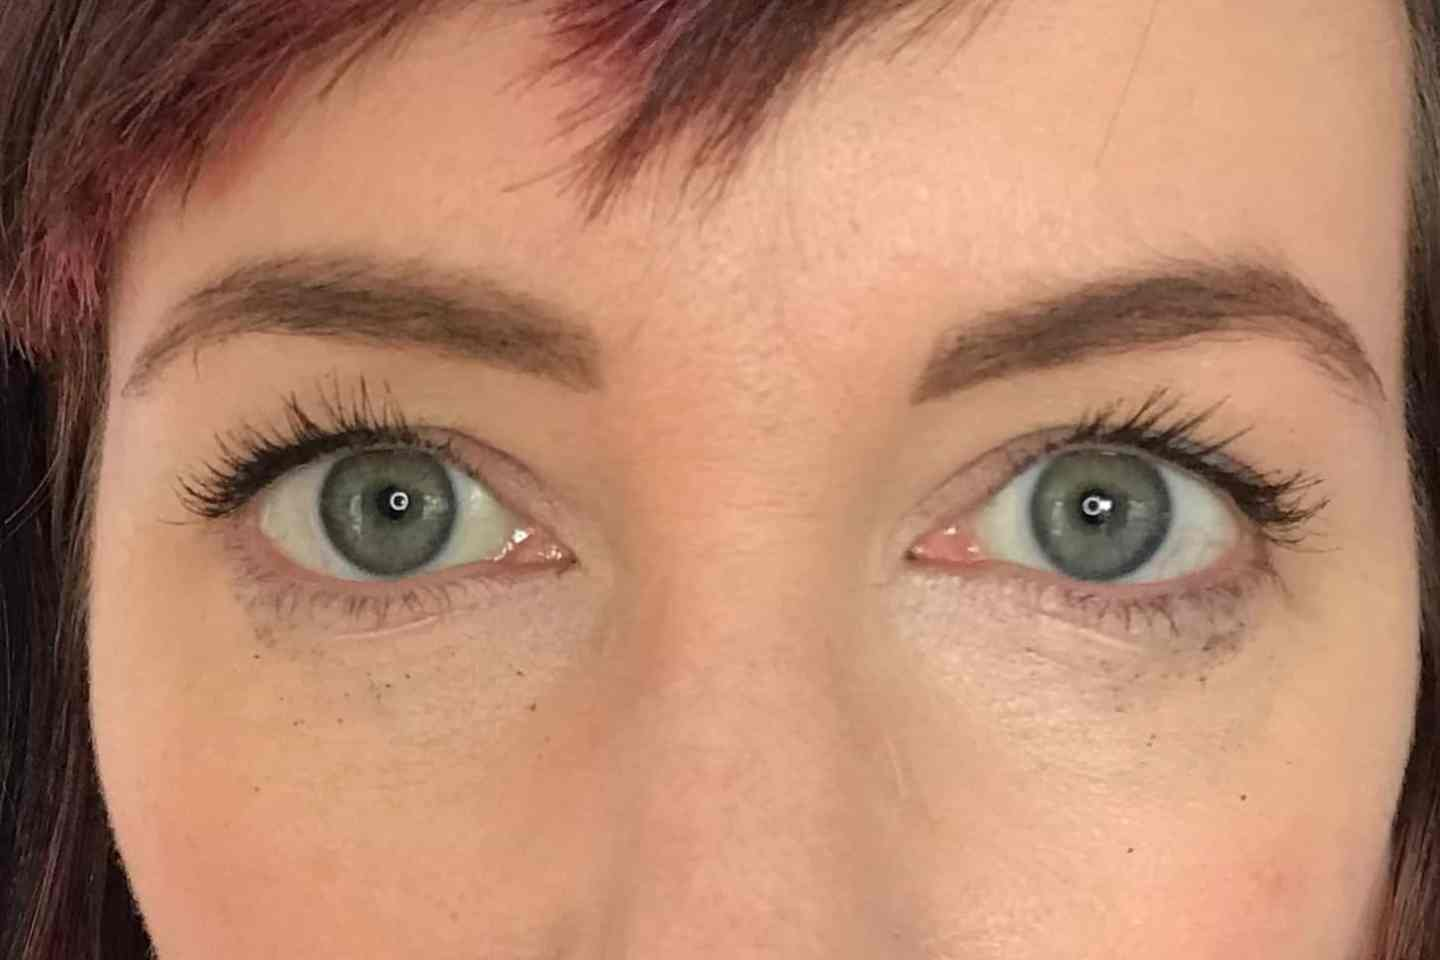 Cosm'etika Mascara after a day of wear